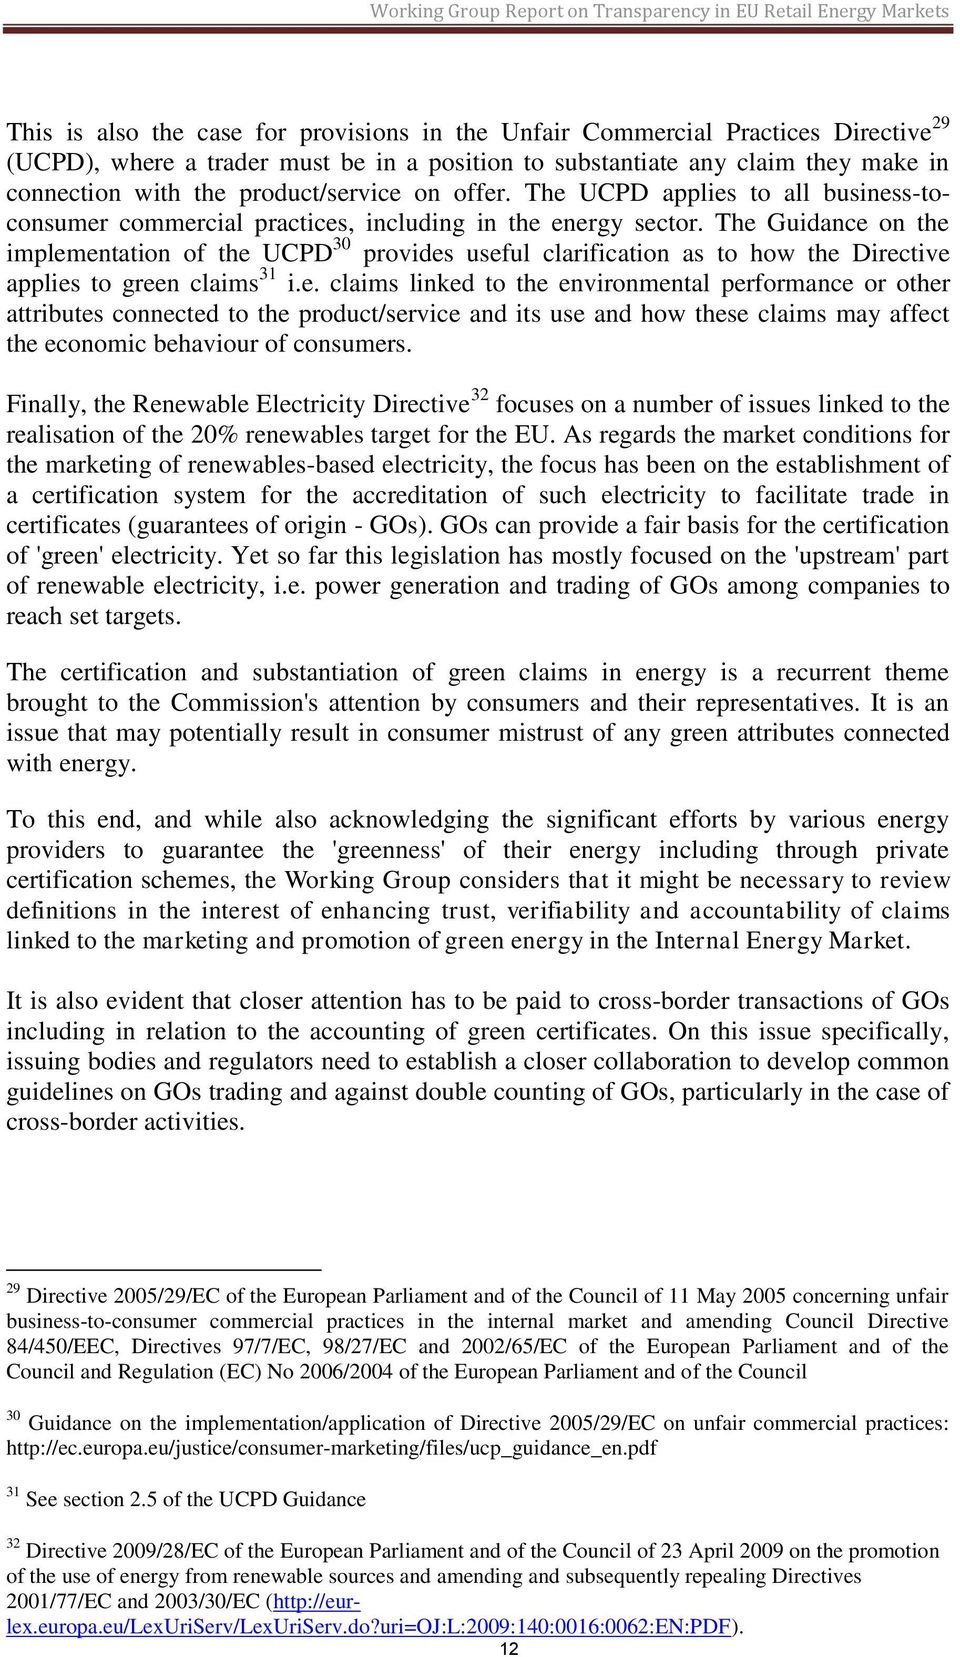 The Guidance on the implementation of the UCPD 30 provides useful clarification as to how the Directive applies to green claims 31 i.e. claims linked to the environmental performance or other attributes connected to the product/service and its use and how these claims may affect the economic behaviour of consumers.